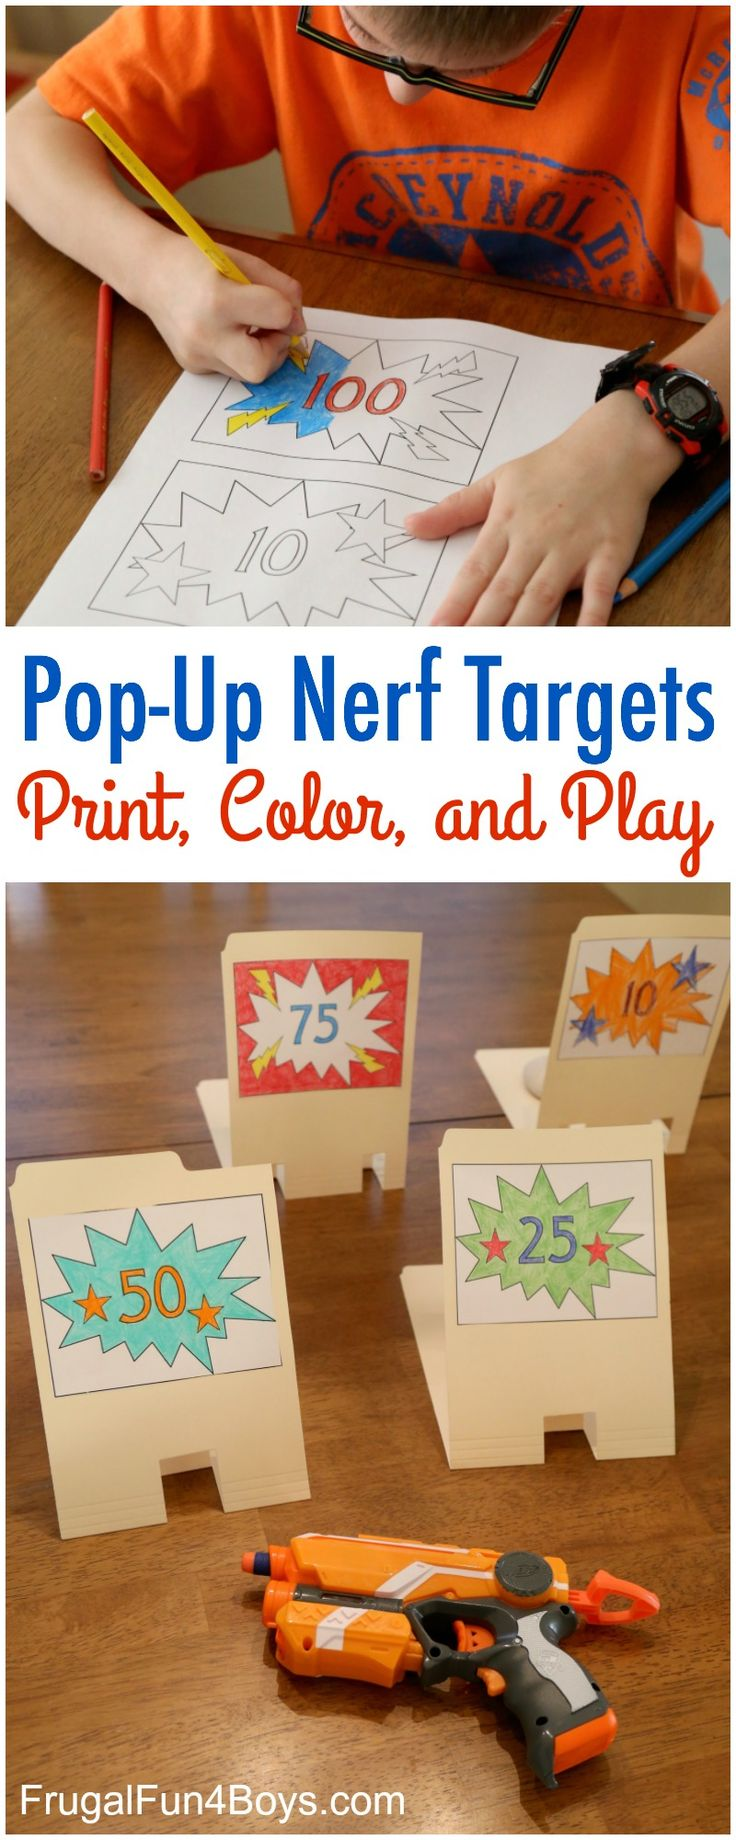 How to Make File Folder Pop-Up Nerf Targets - Print the template from the post! The targets knock down and pop back up again.